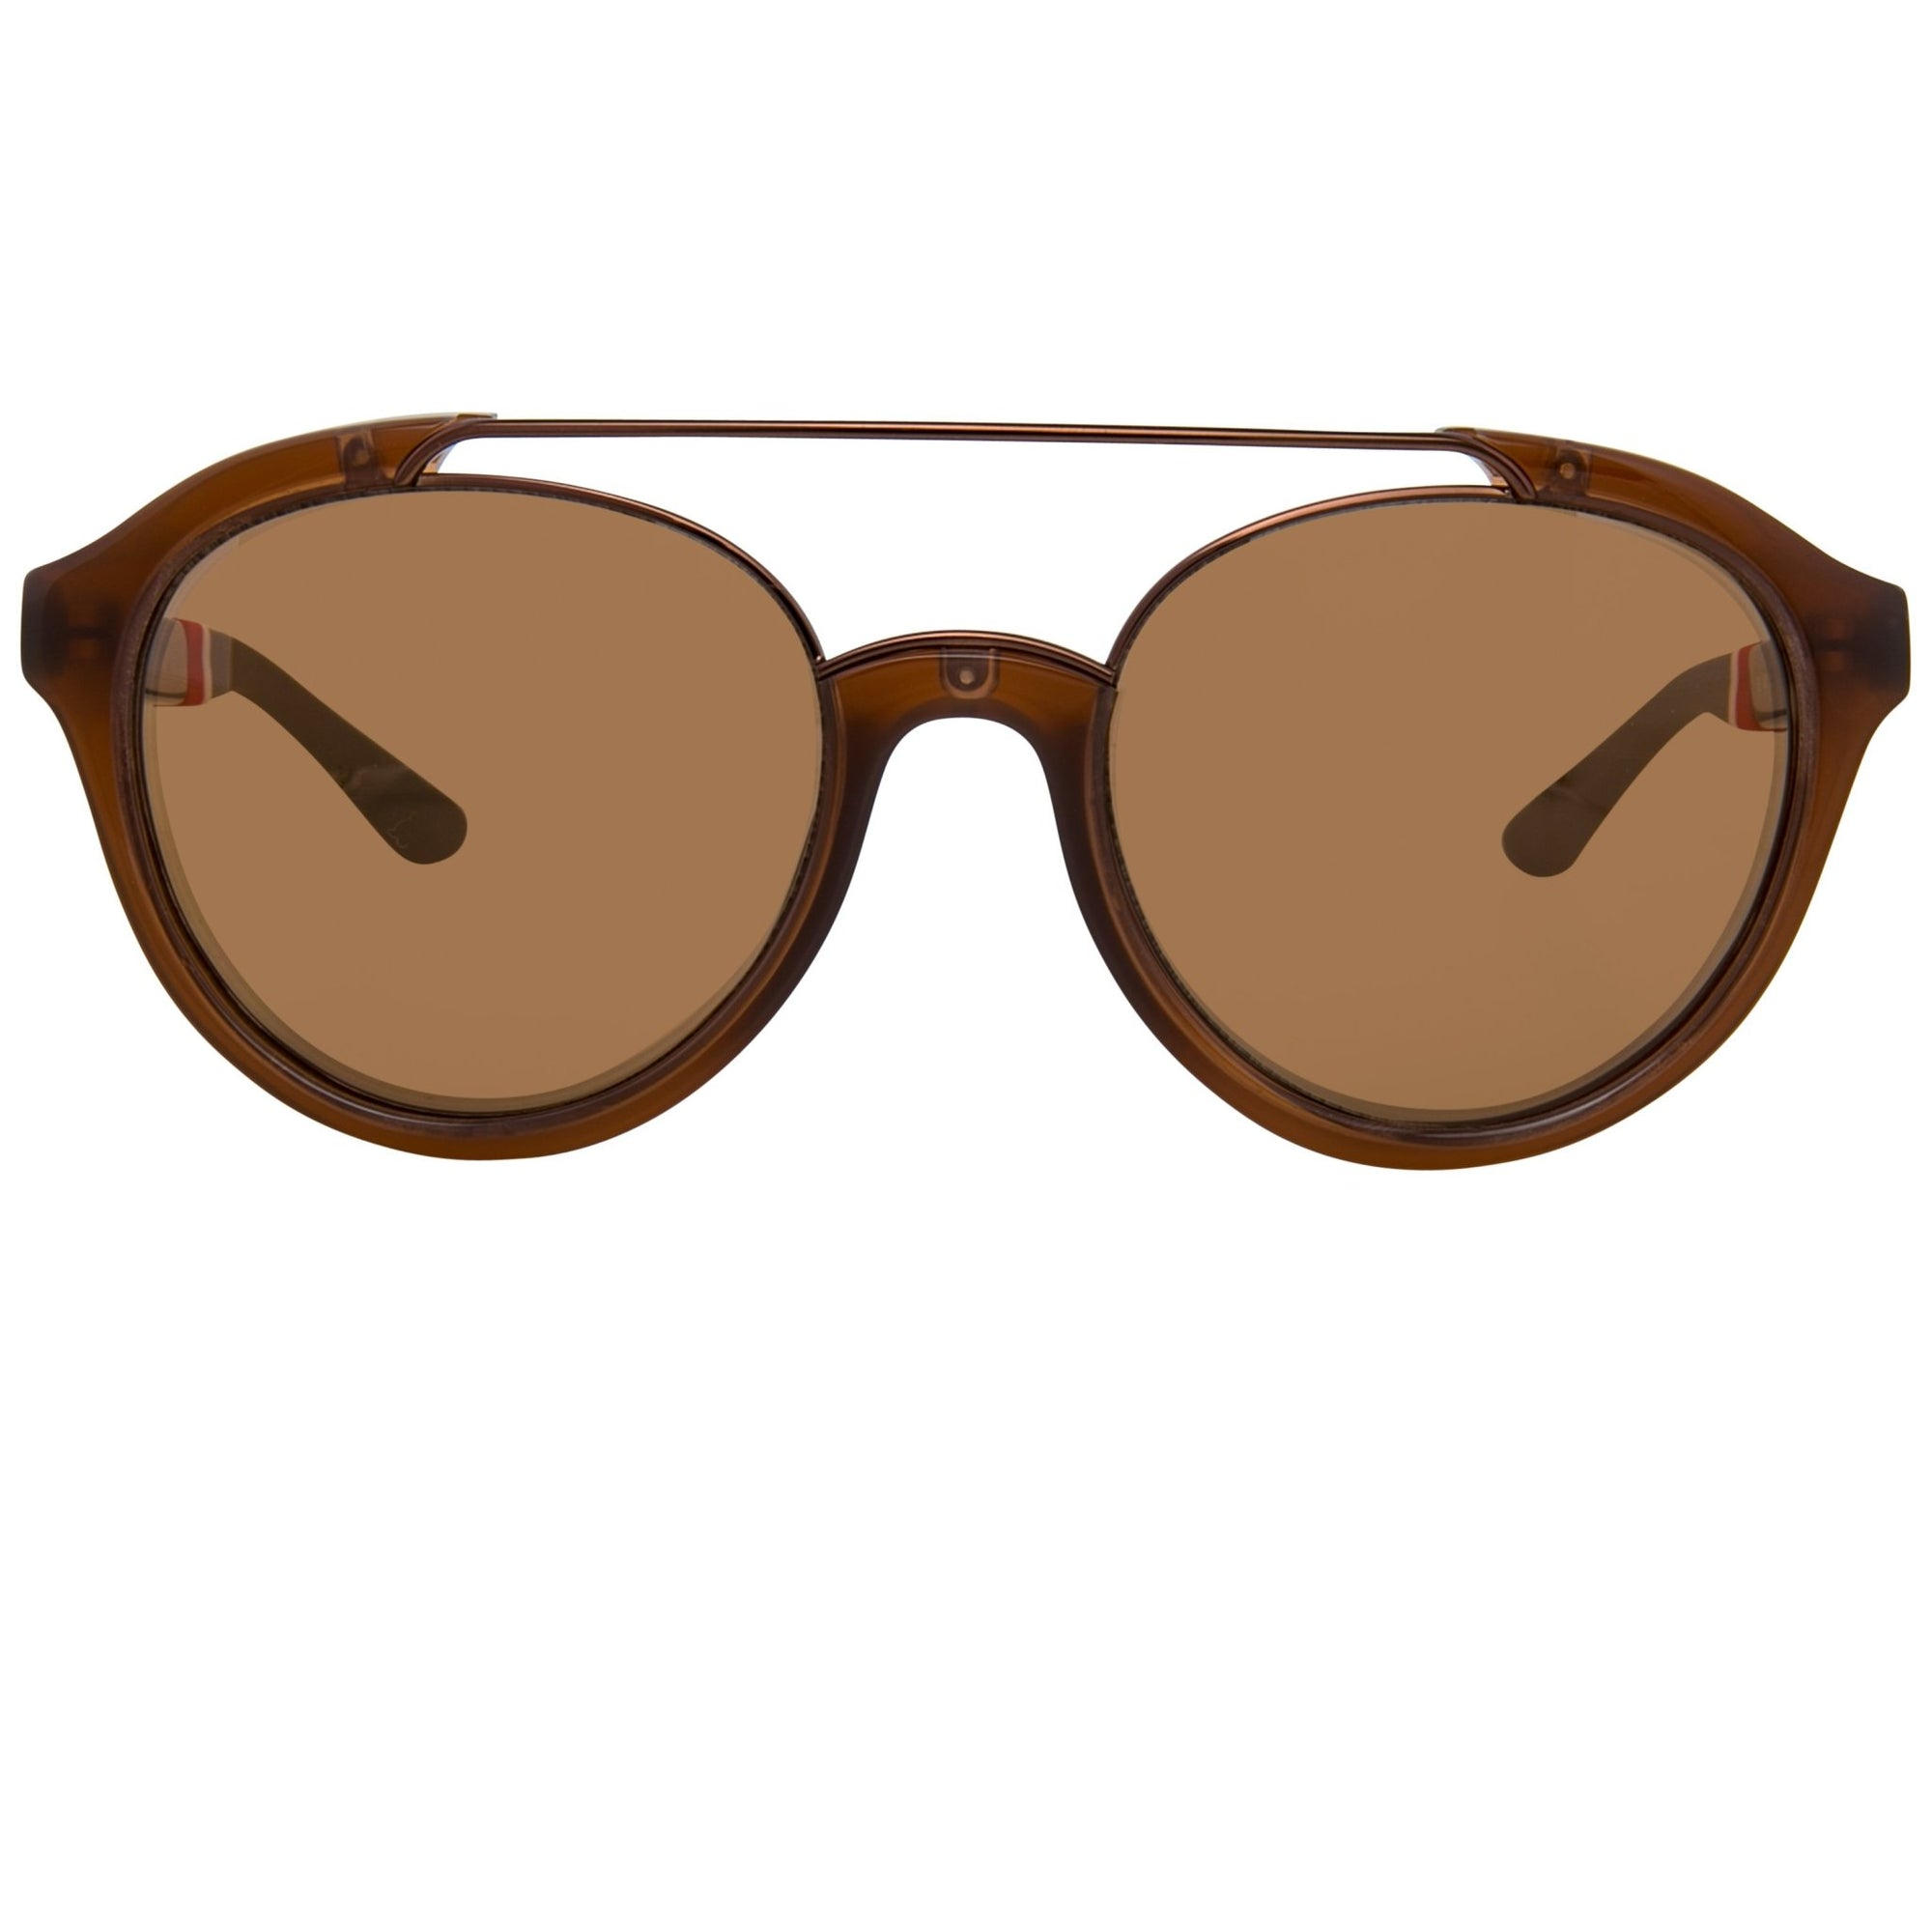 Orlebar Brown Sunglasses Oval Clay & Bronze with Metallic Brown Lenses OB42C6SUN - Watches & Crystals